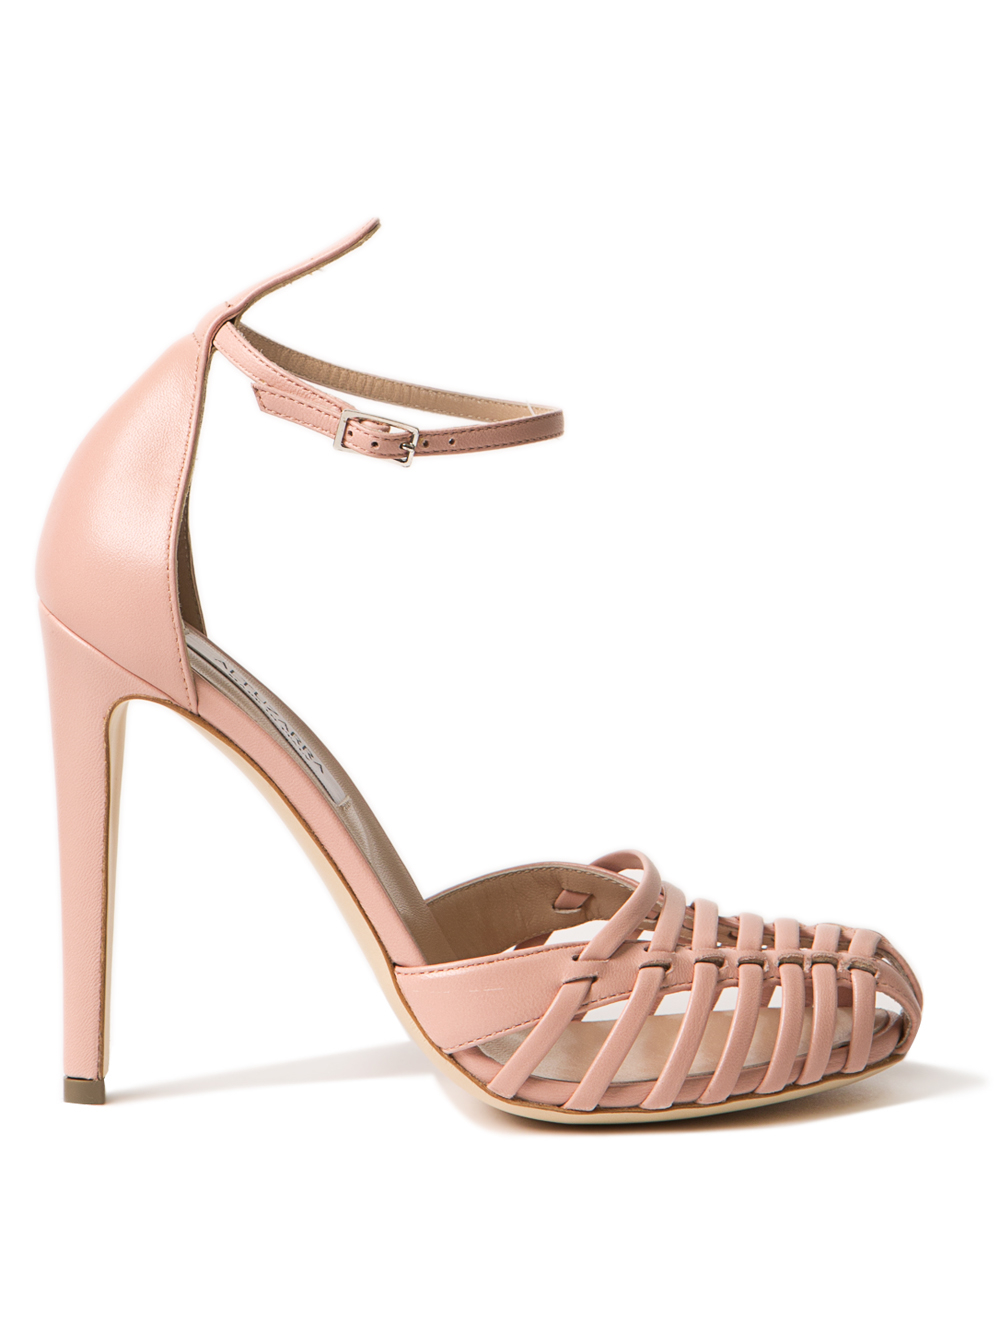 wiki cheap online reliable sale online Altuzarra Leather T-Strap Sandals cheap looking for buy cheap best store to get sale how much H8A8Oo0Vo